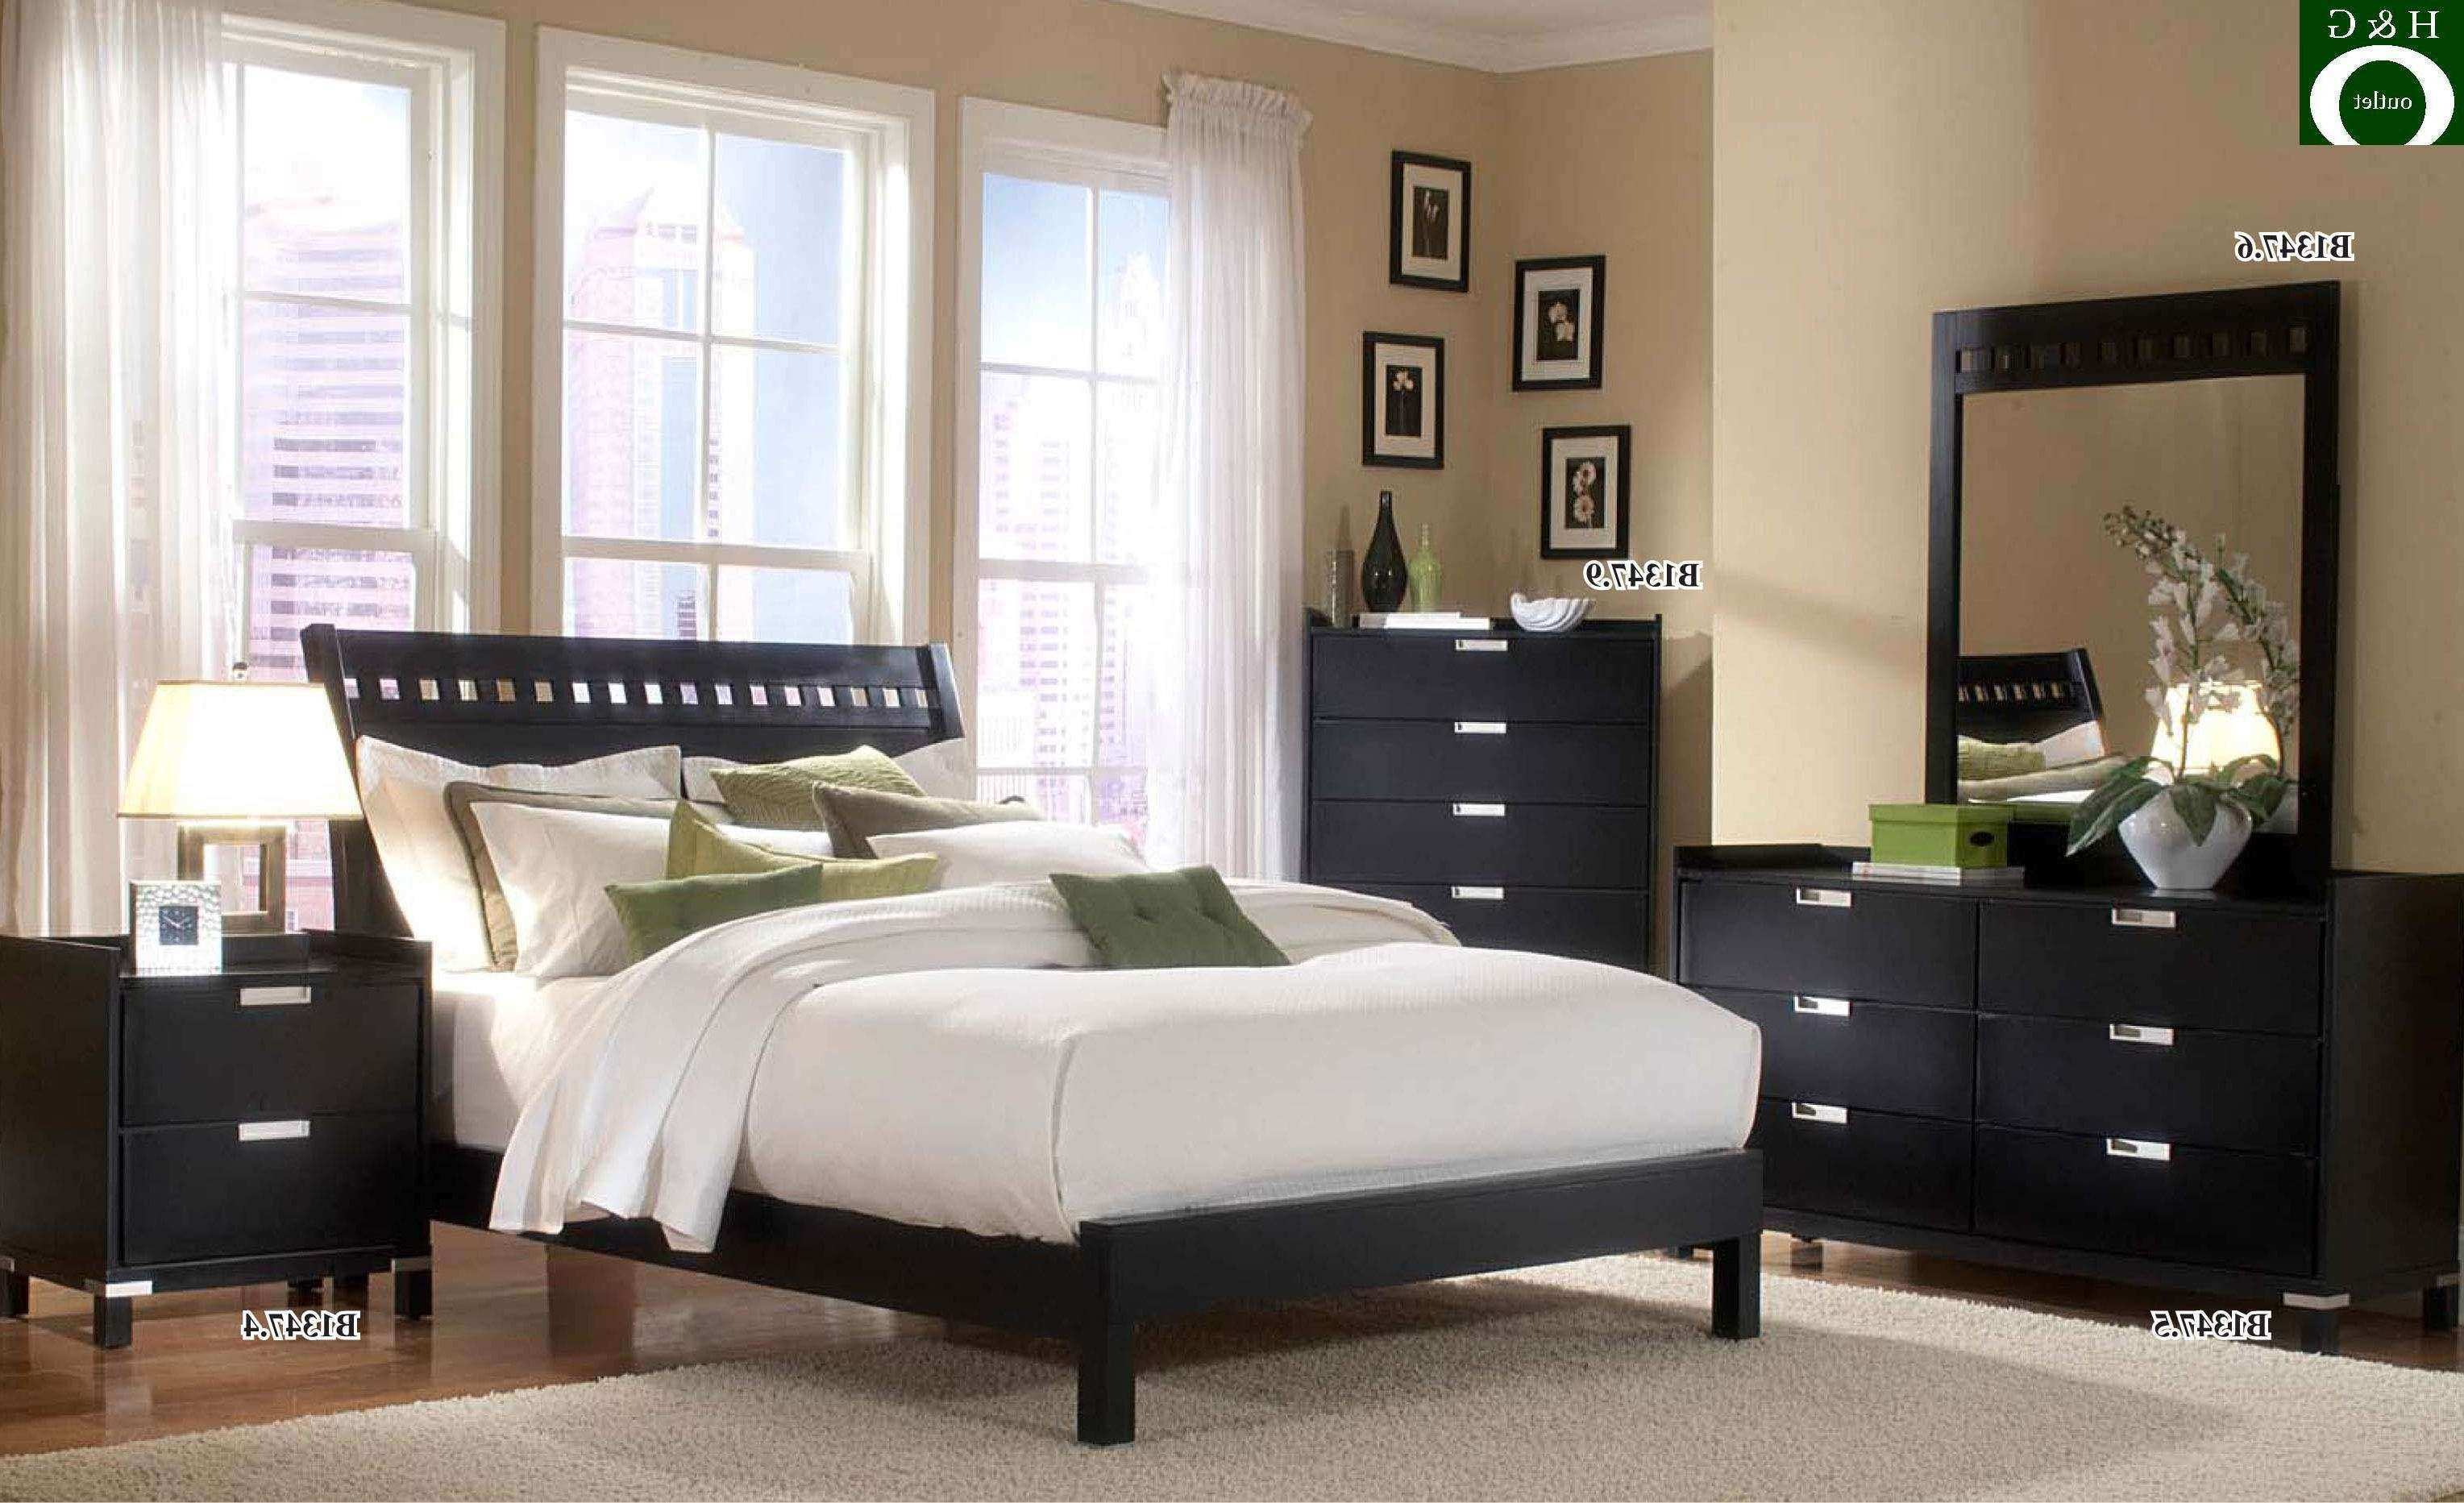 Full Bed Bedroom Sets Beautiful Bedroom Black and White Bedroom Art